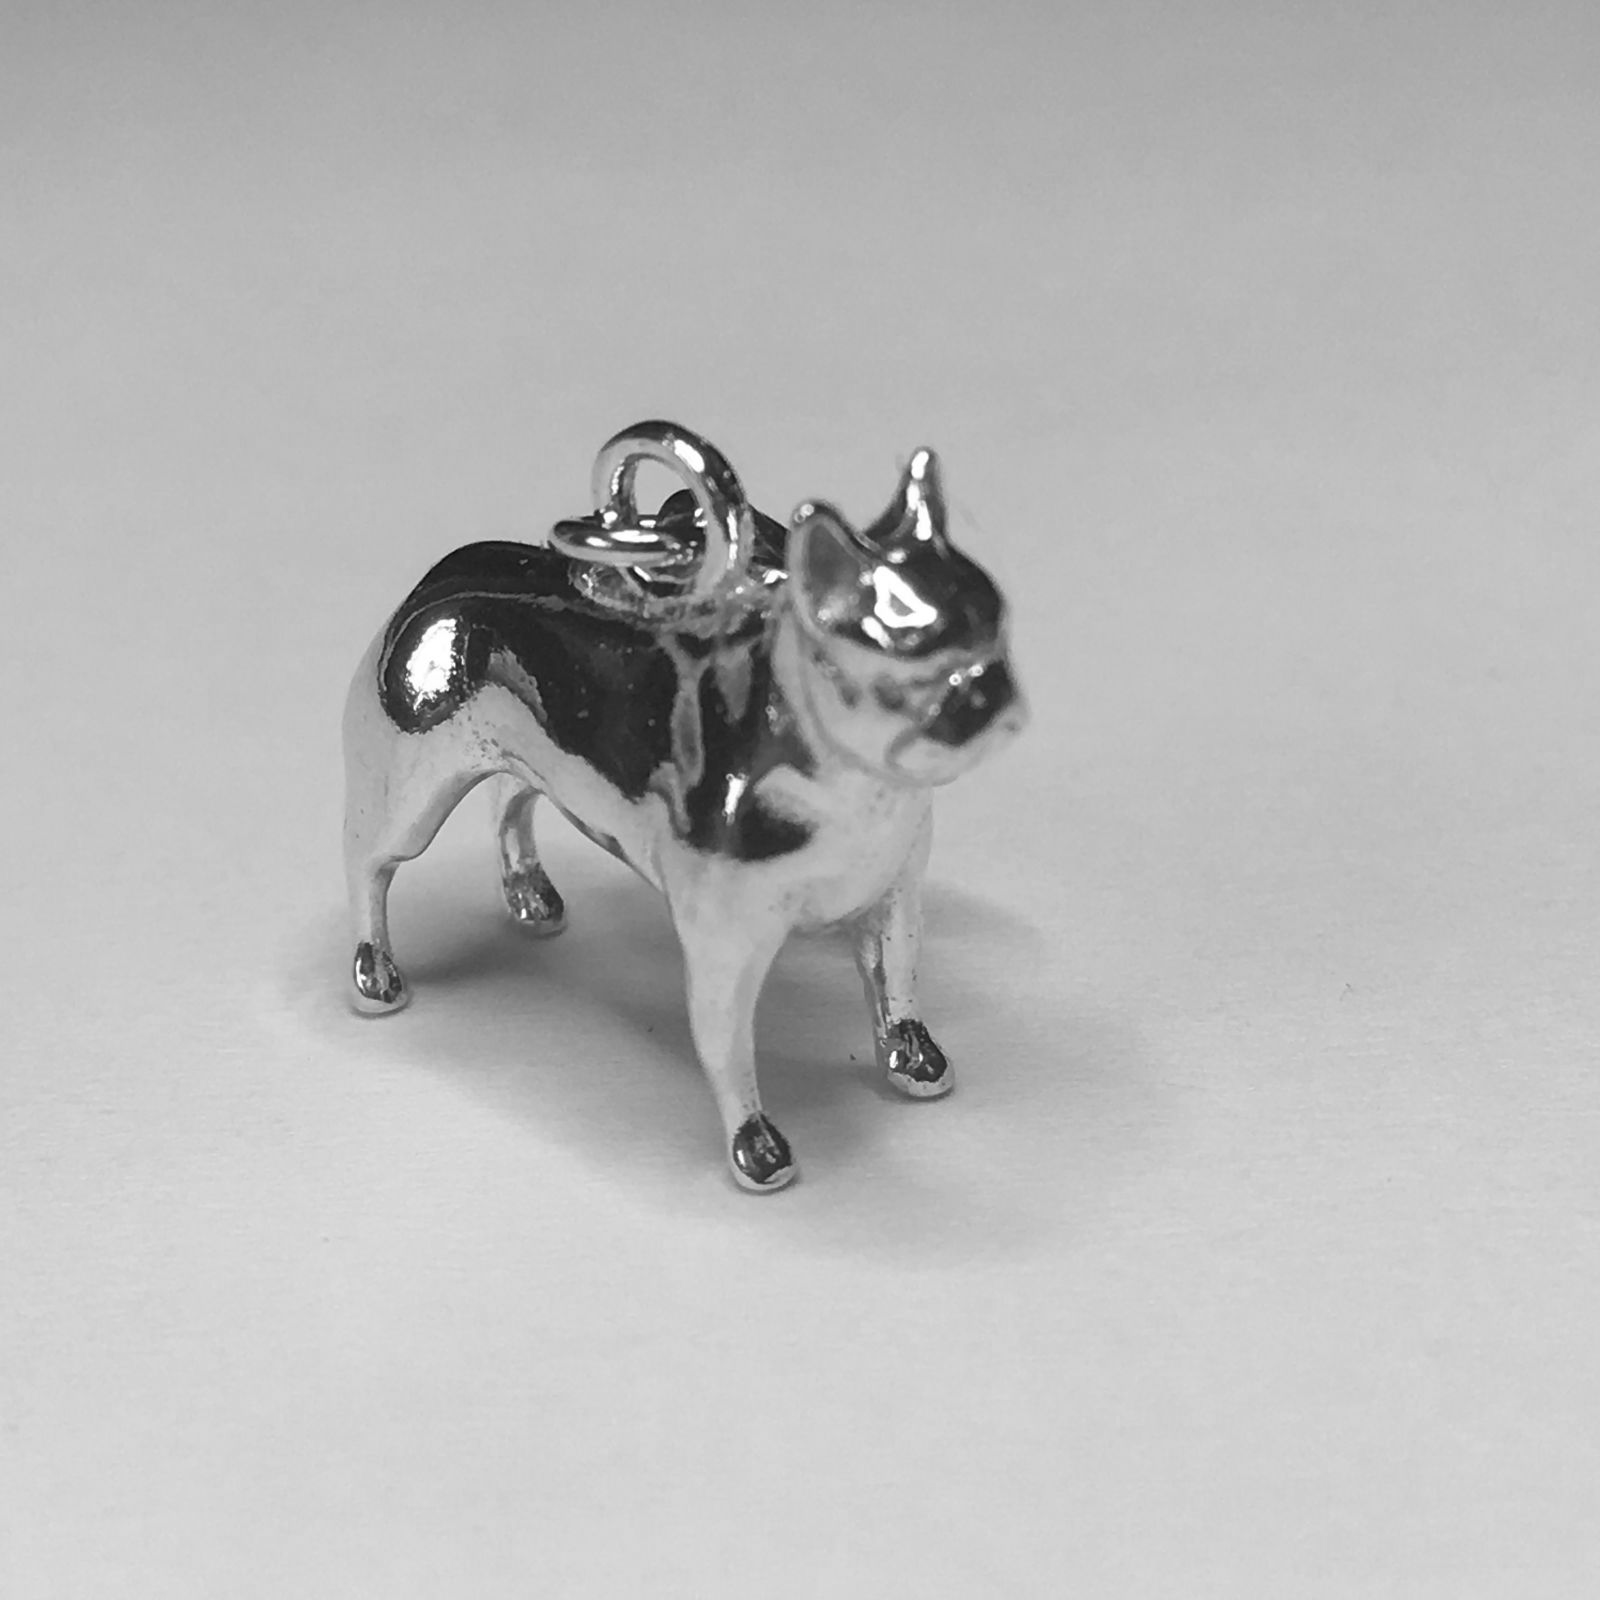 French Bulldog Dog Charm